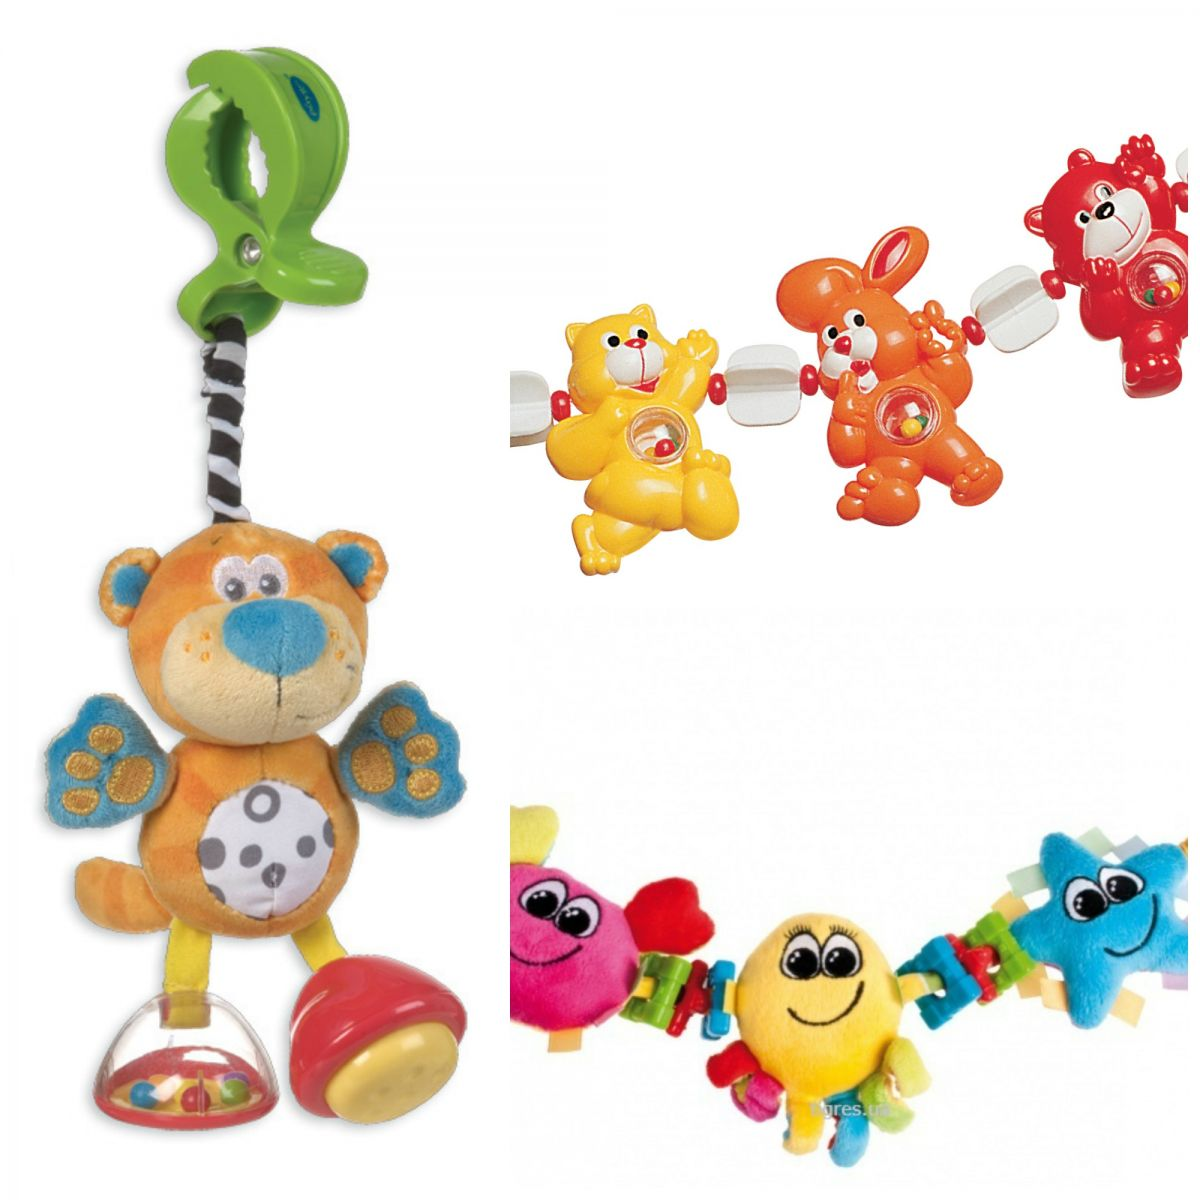 Toys for a month old baby. Pendants